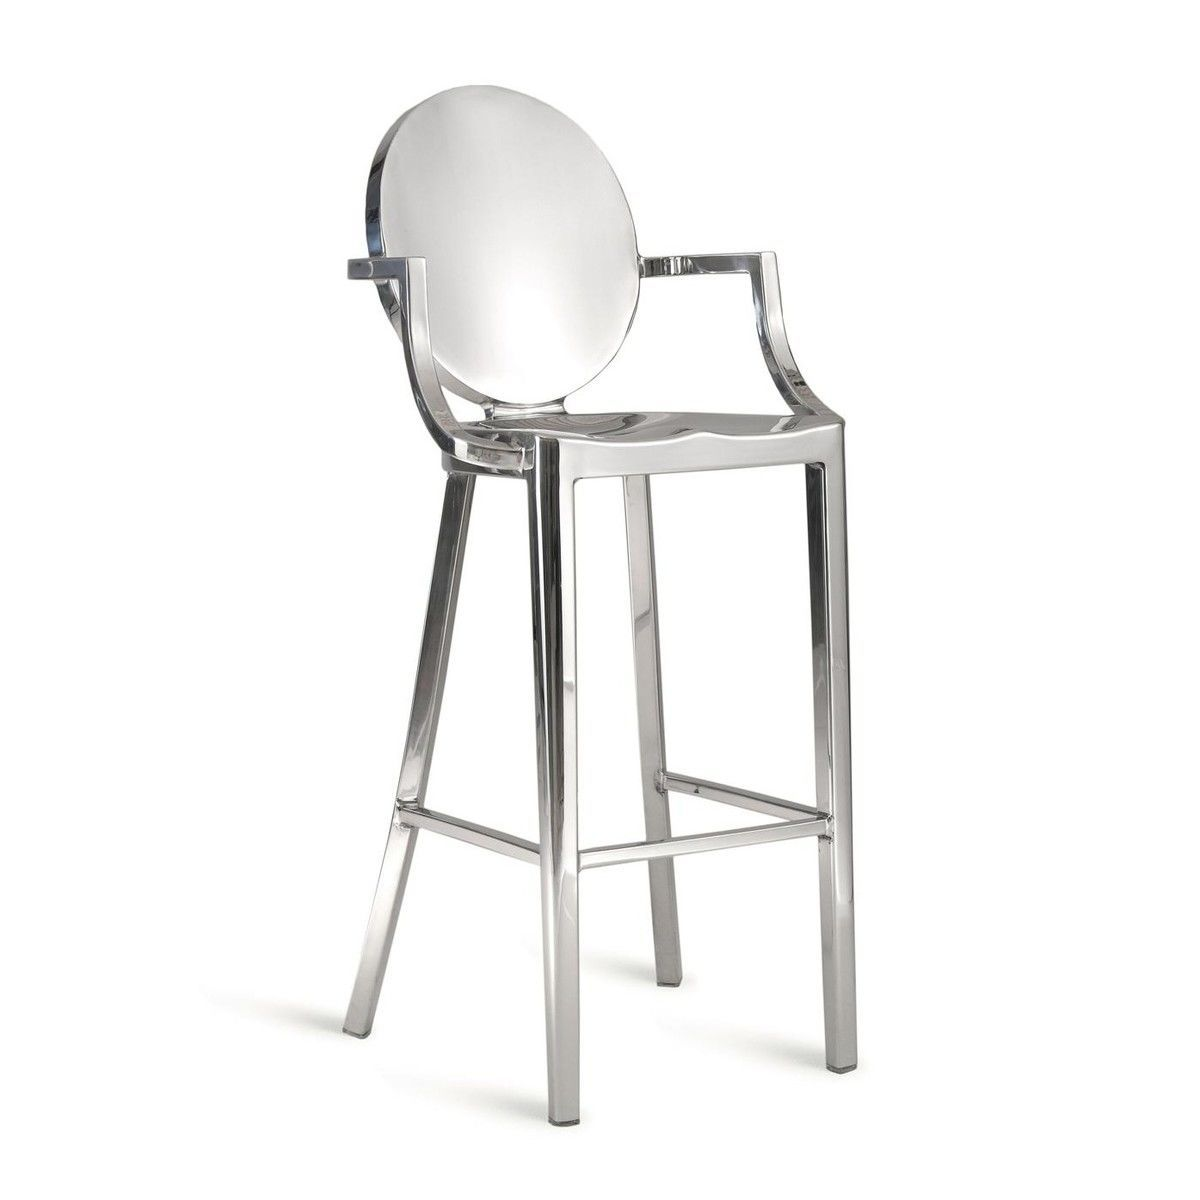 kong barstool with armrests  emeco  ambientedirectcom - emeco  kong barstool with armrests  aluminiumpolishedseat heigt  cm